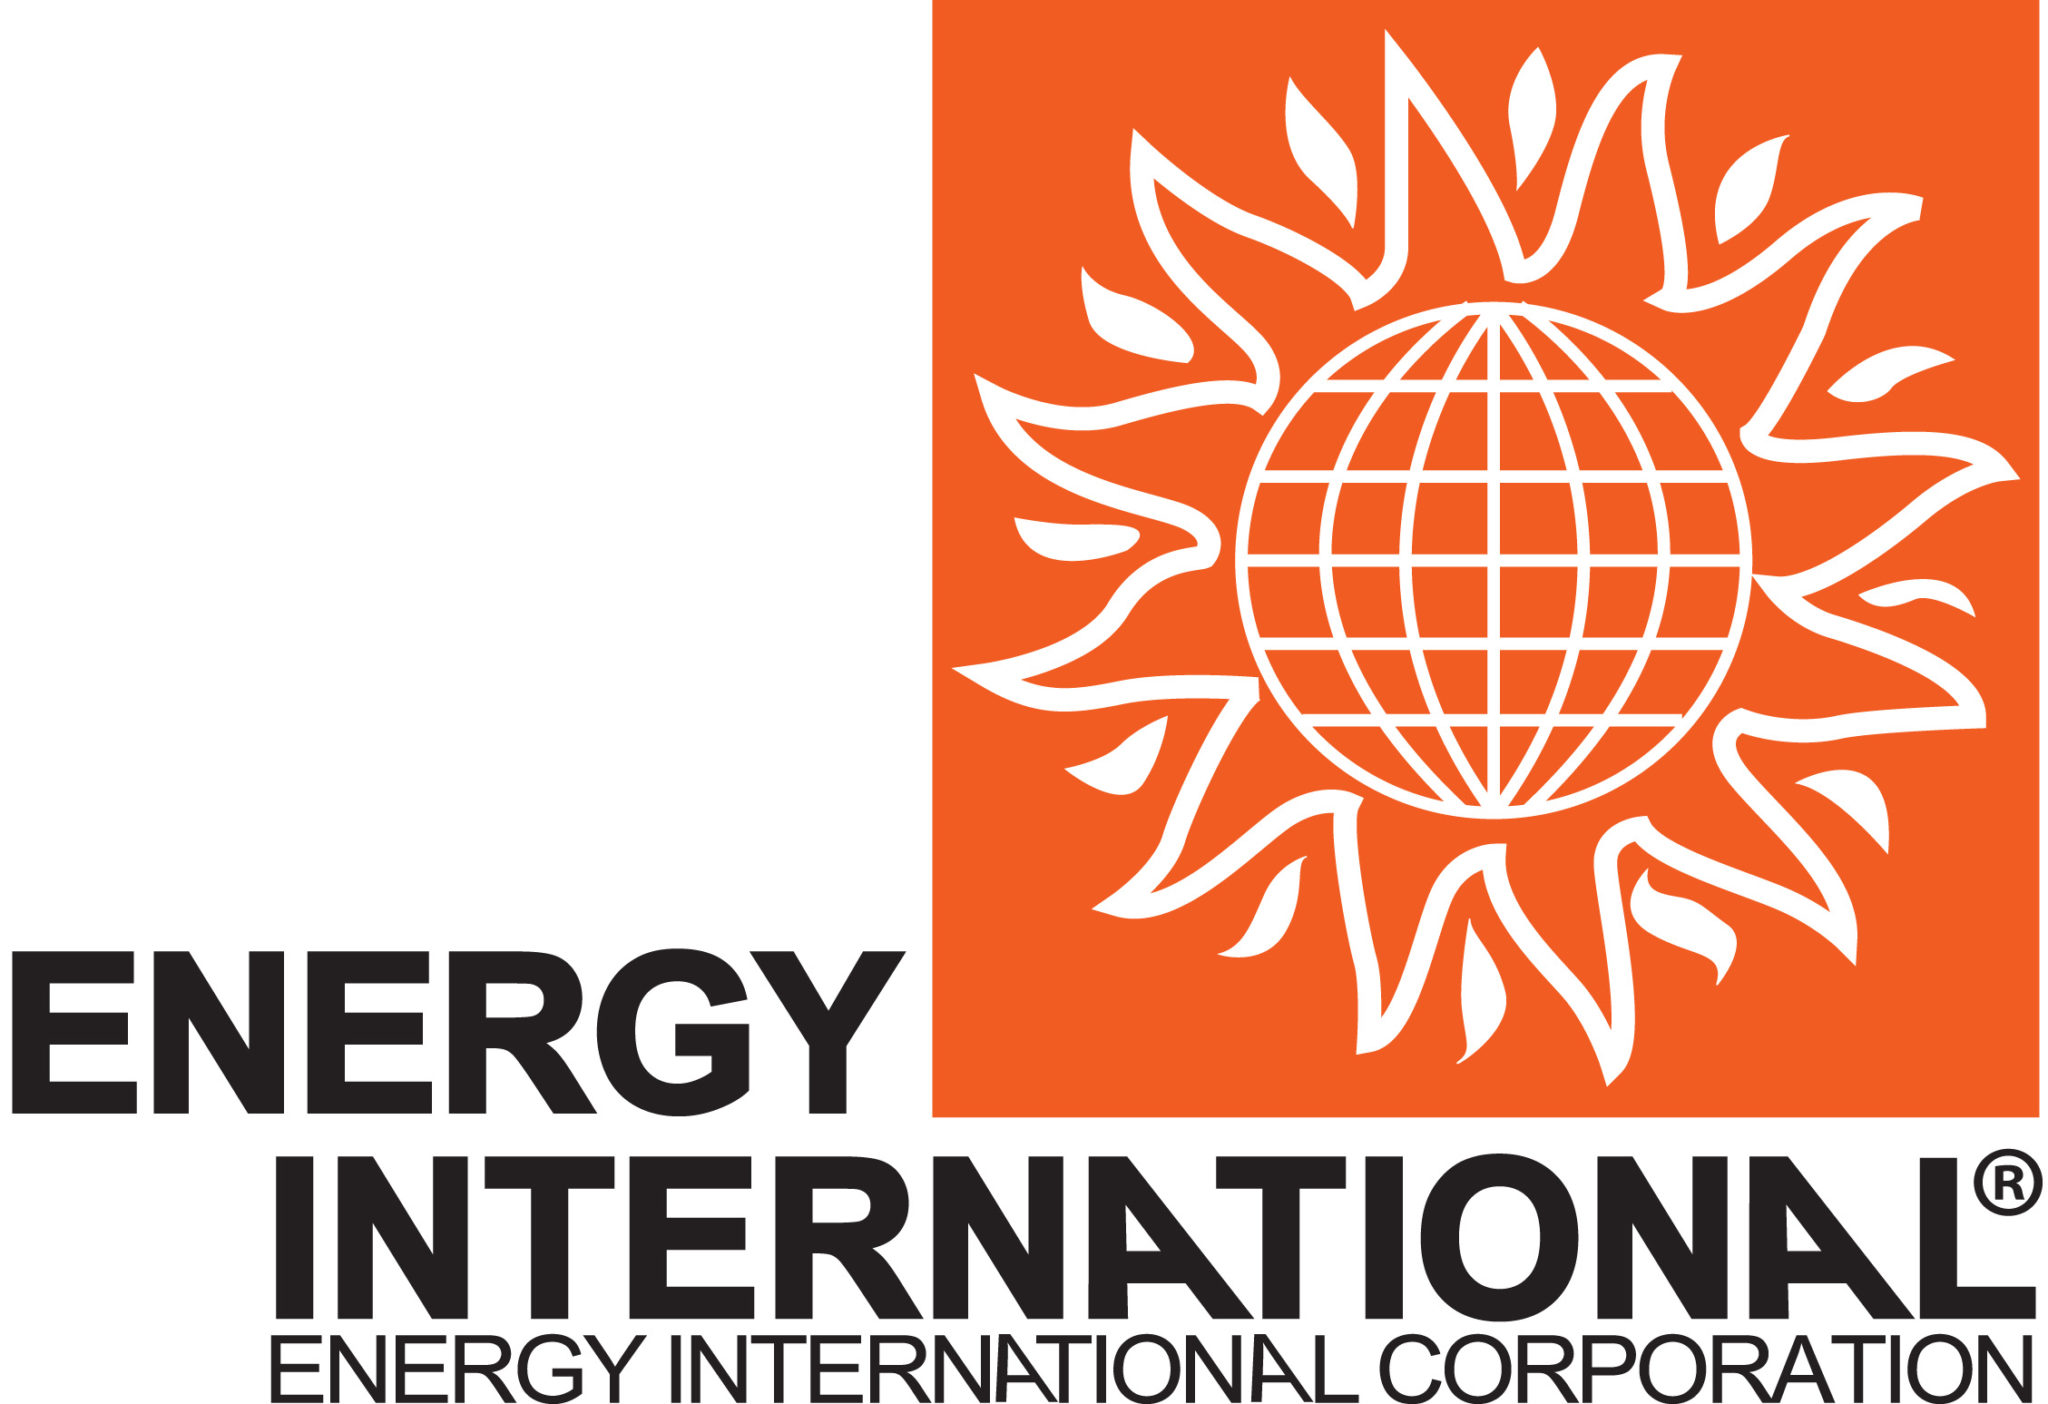 The Energy International Corporation (EIC)